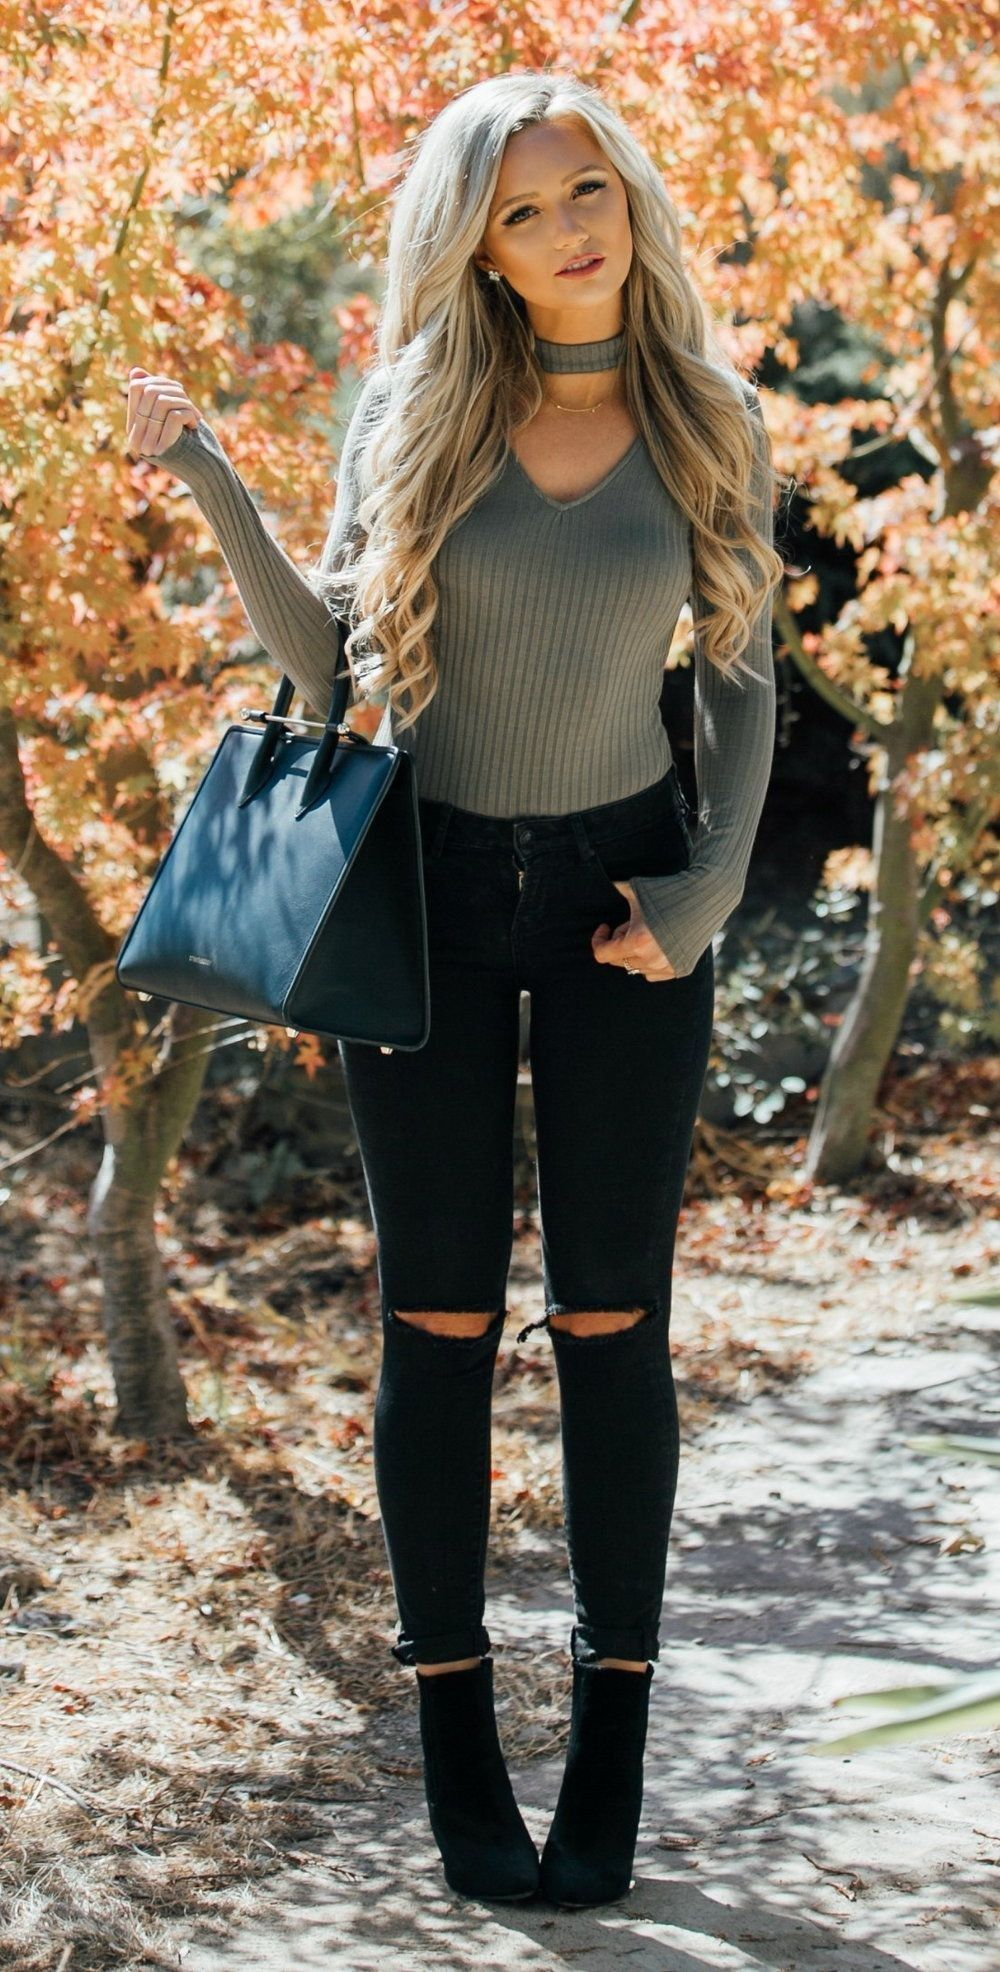 5d62e6235ad93 Simple But Nice Fall Outfit Ideas 21 - Cooattire.com | clothes ...